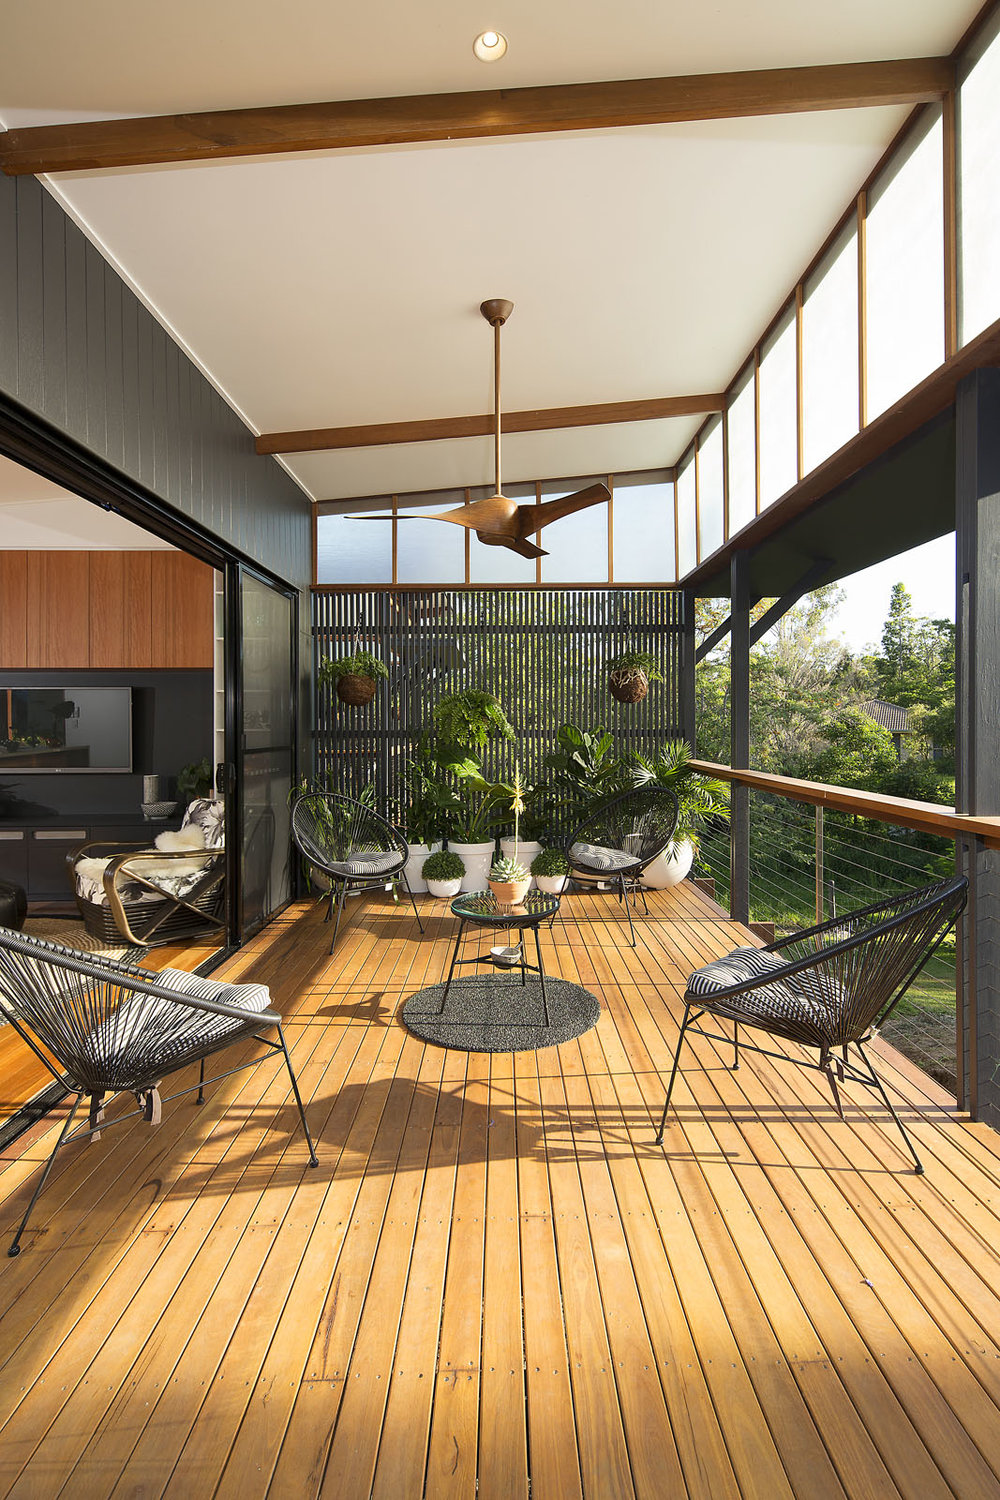 Australia's leading small house designers